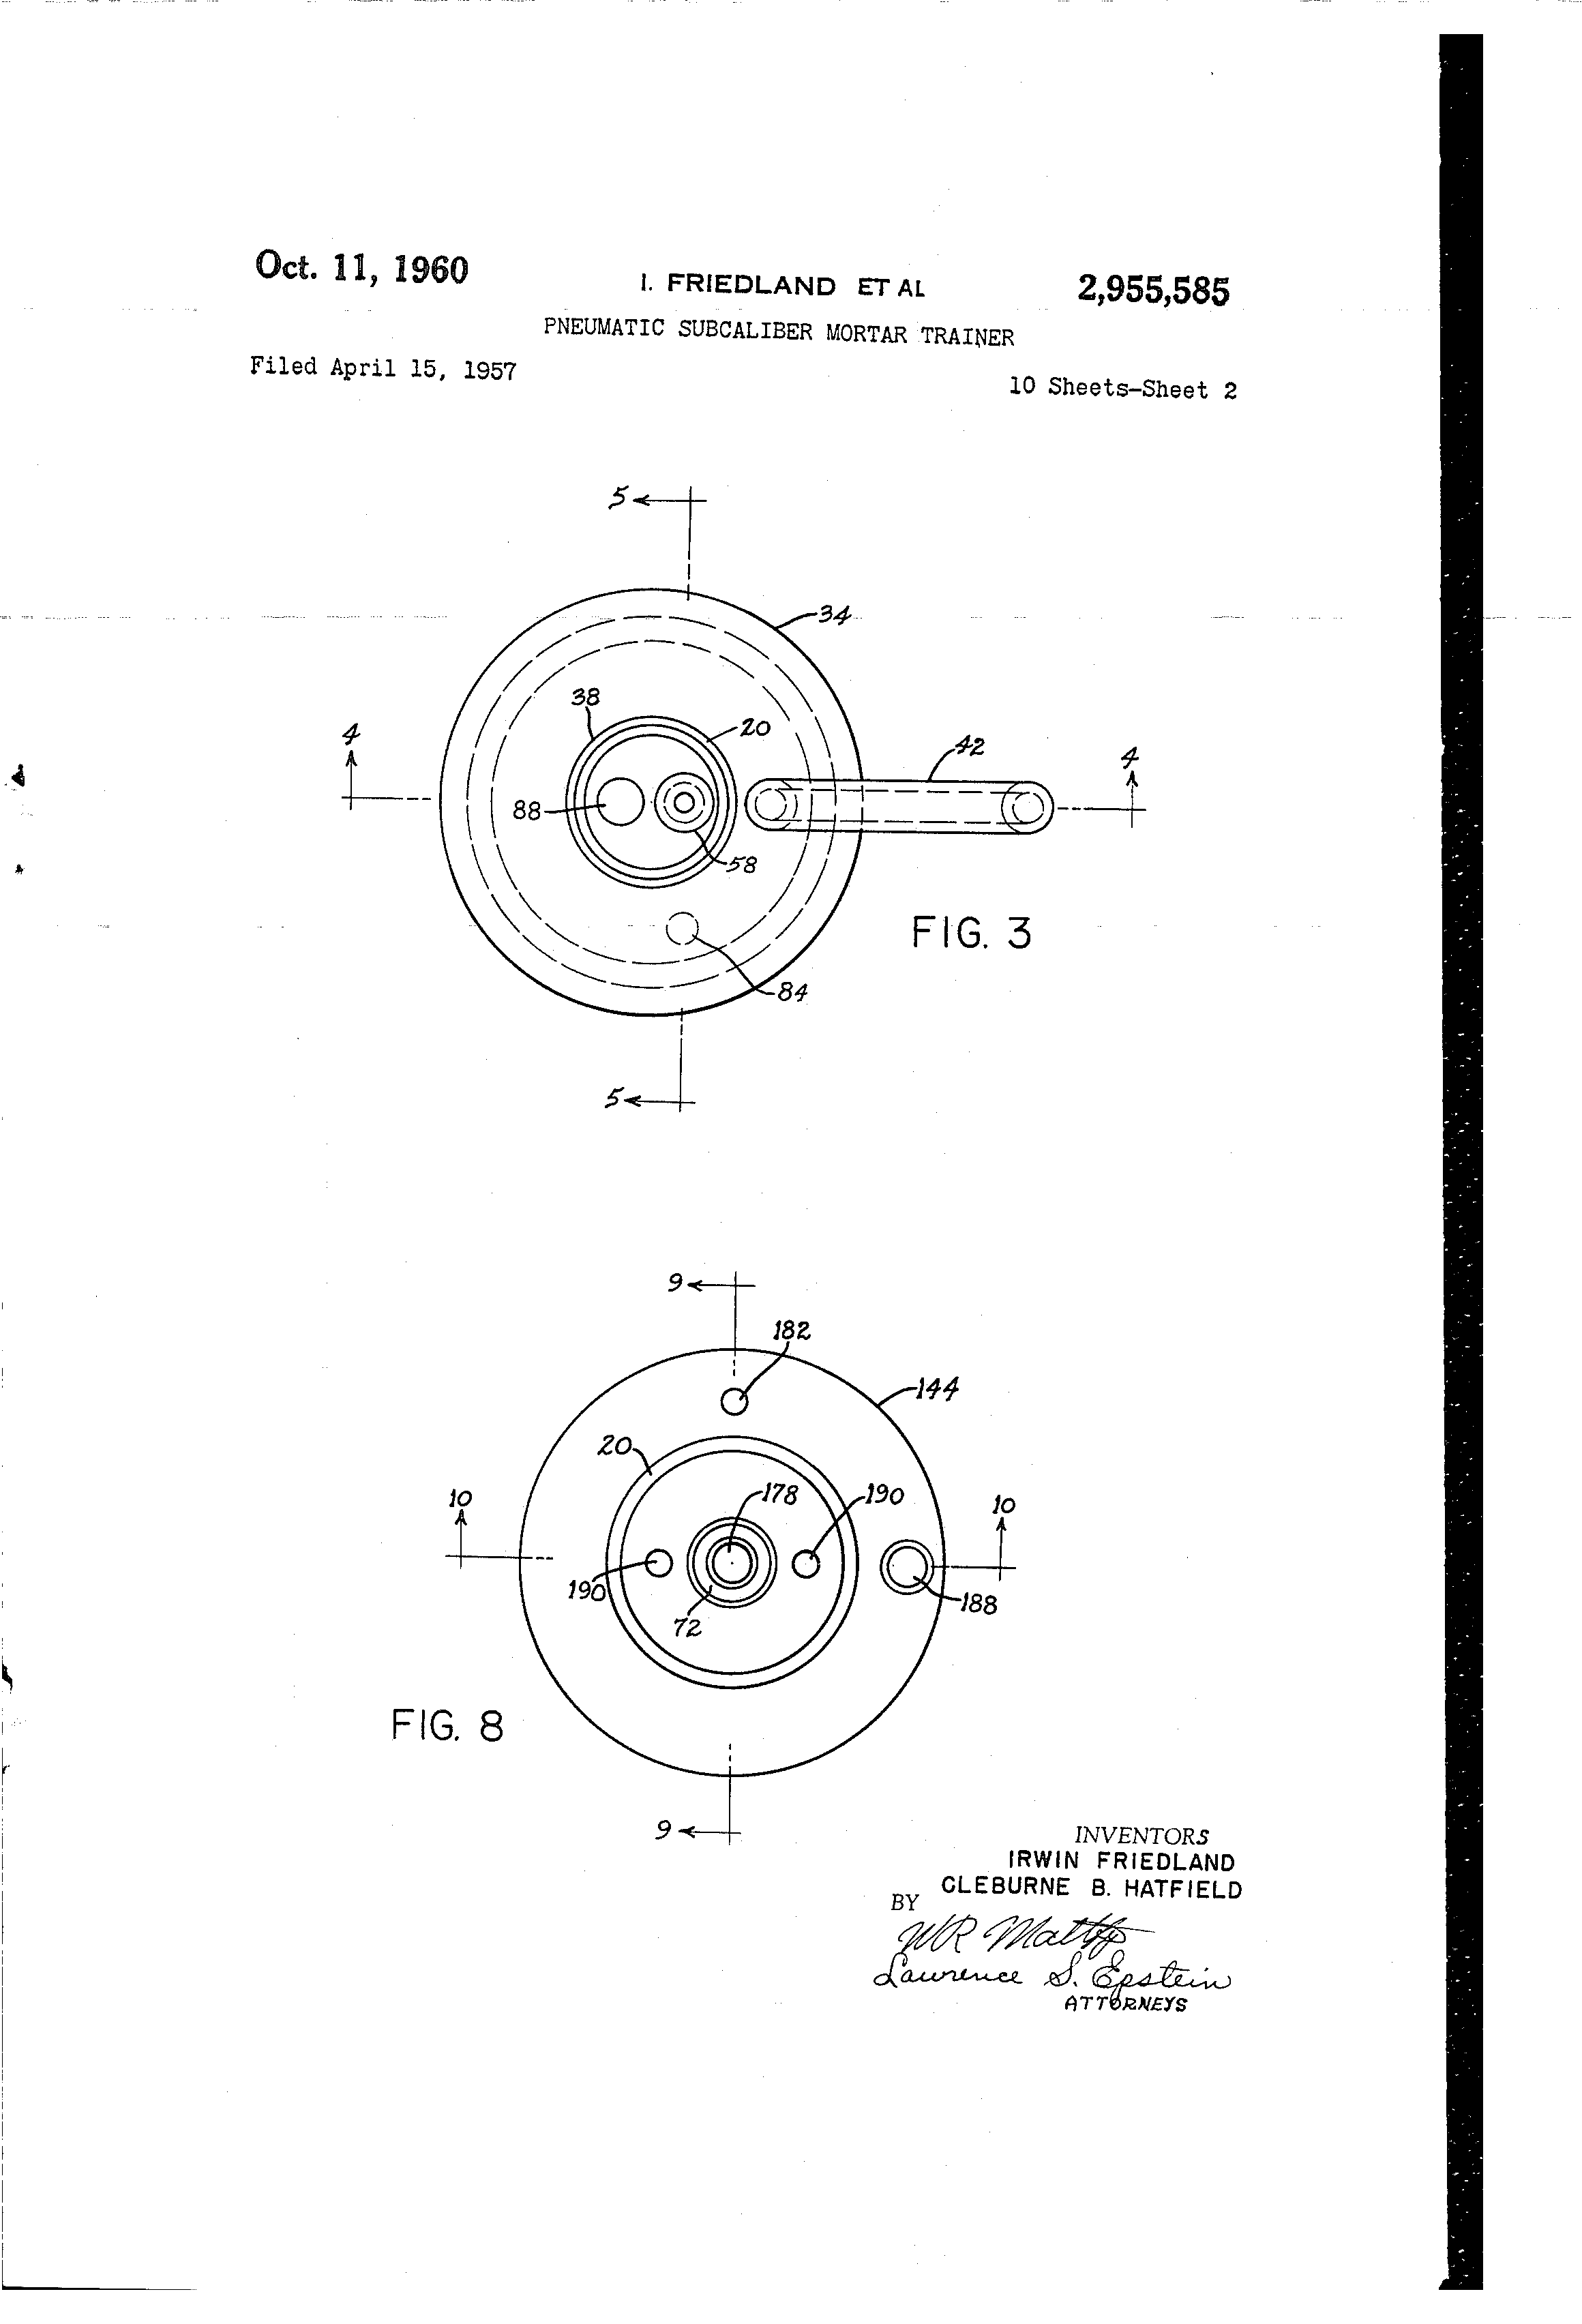 US2955585 1 patent us2955585 pneumatic subcaliber mortar trainer google friedland type 4 wiring diagram at crackthecode.co